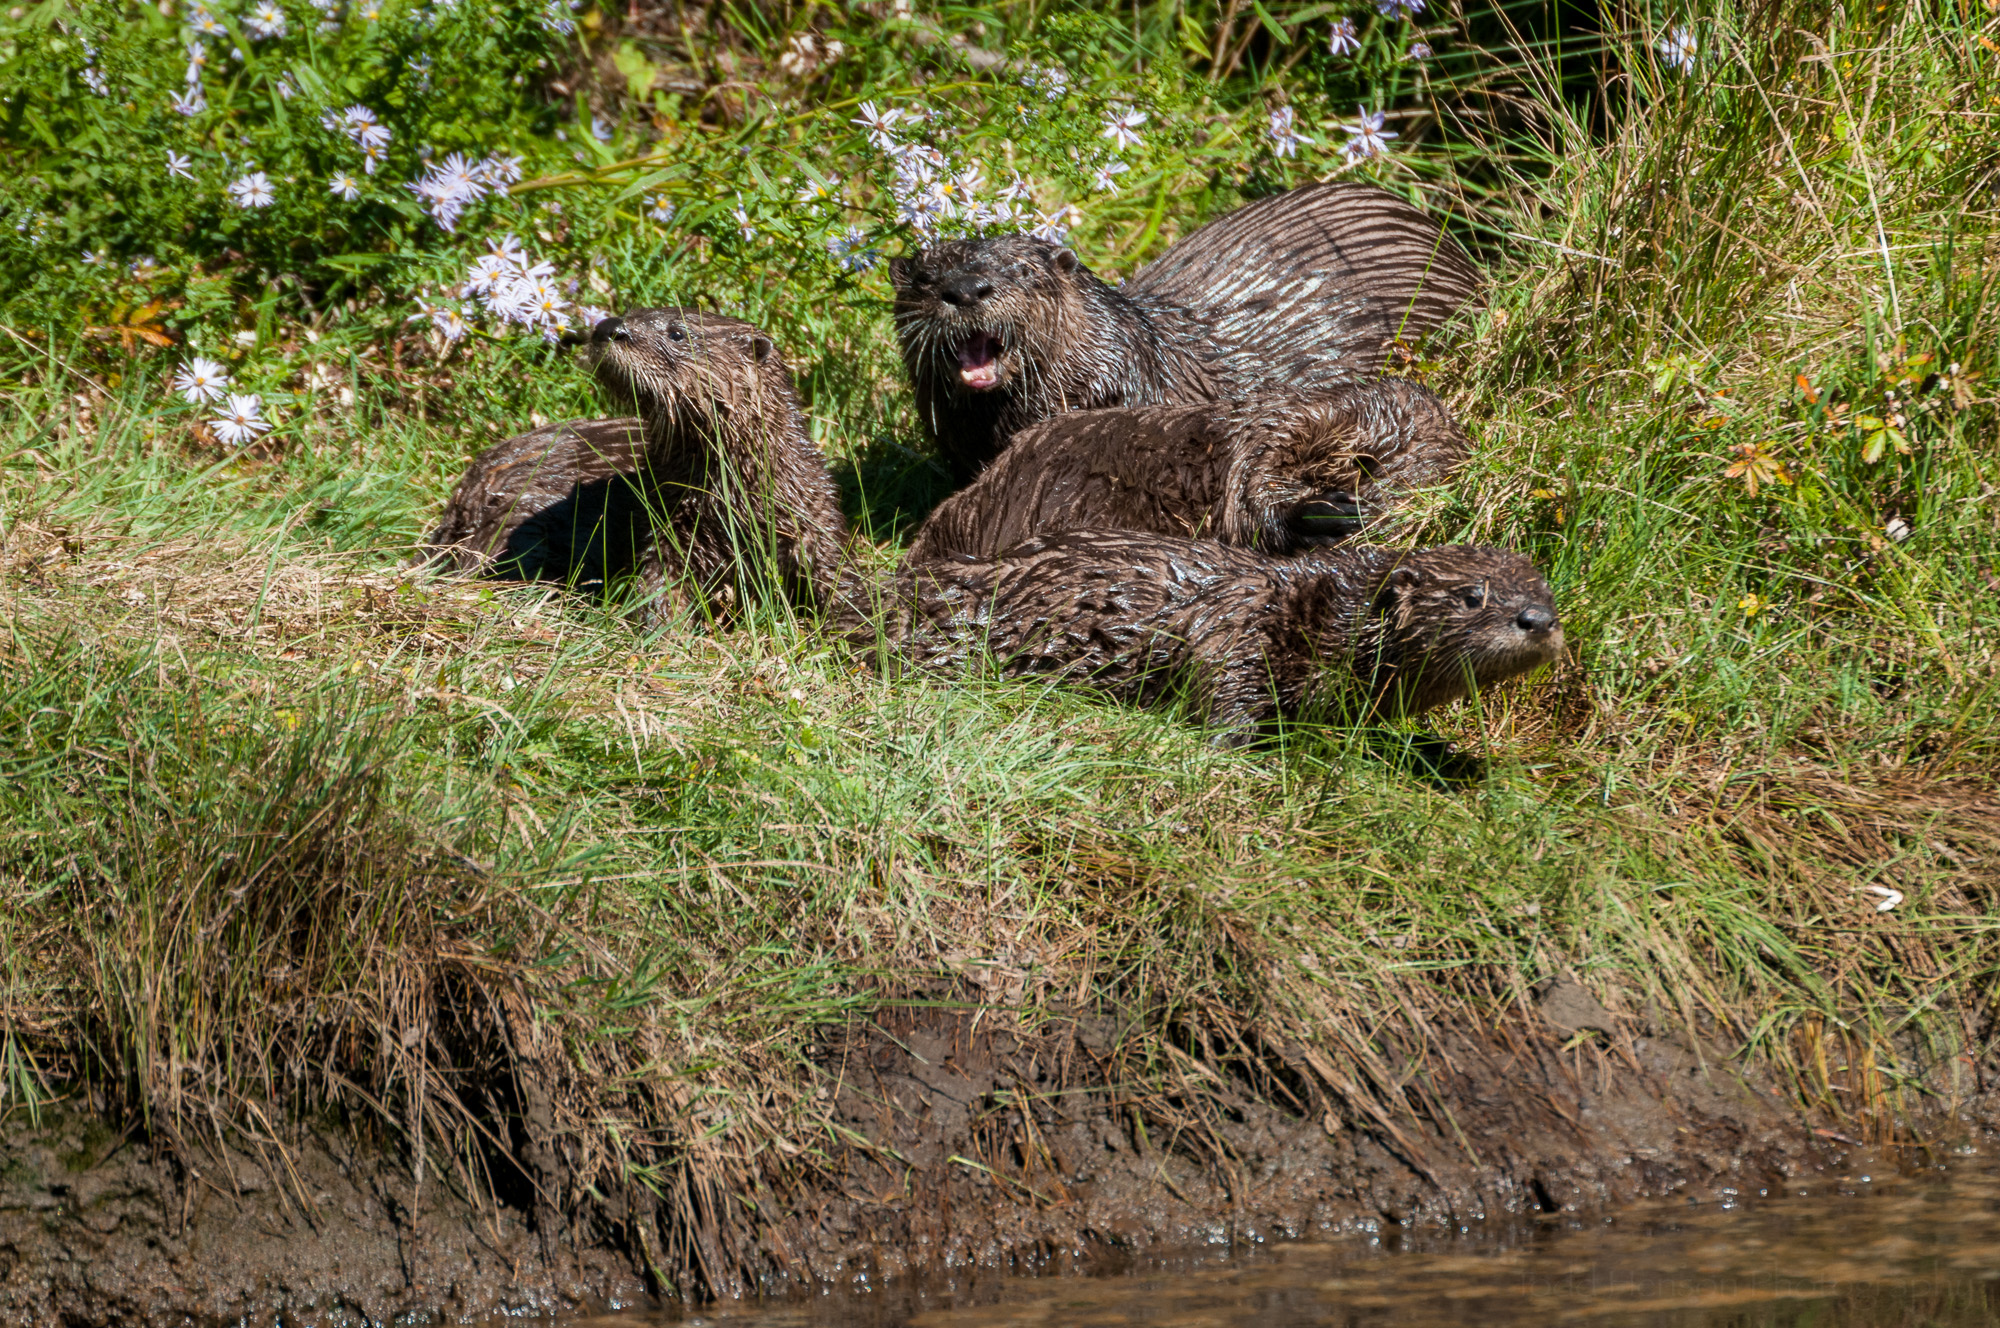 Four River Otter I photographed in Acadia National Park, along the Schoodic Peninsula in Maine.